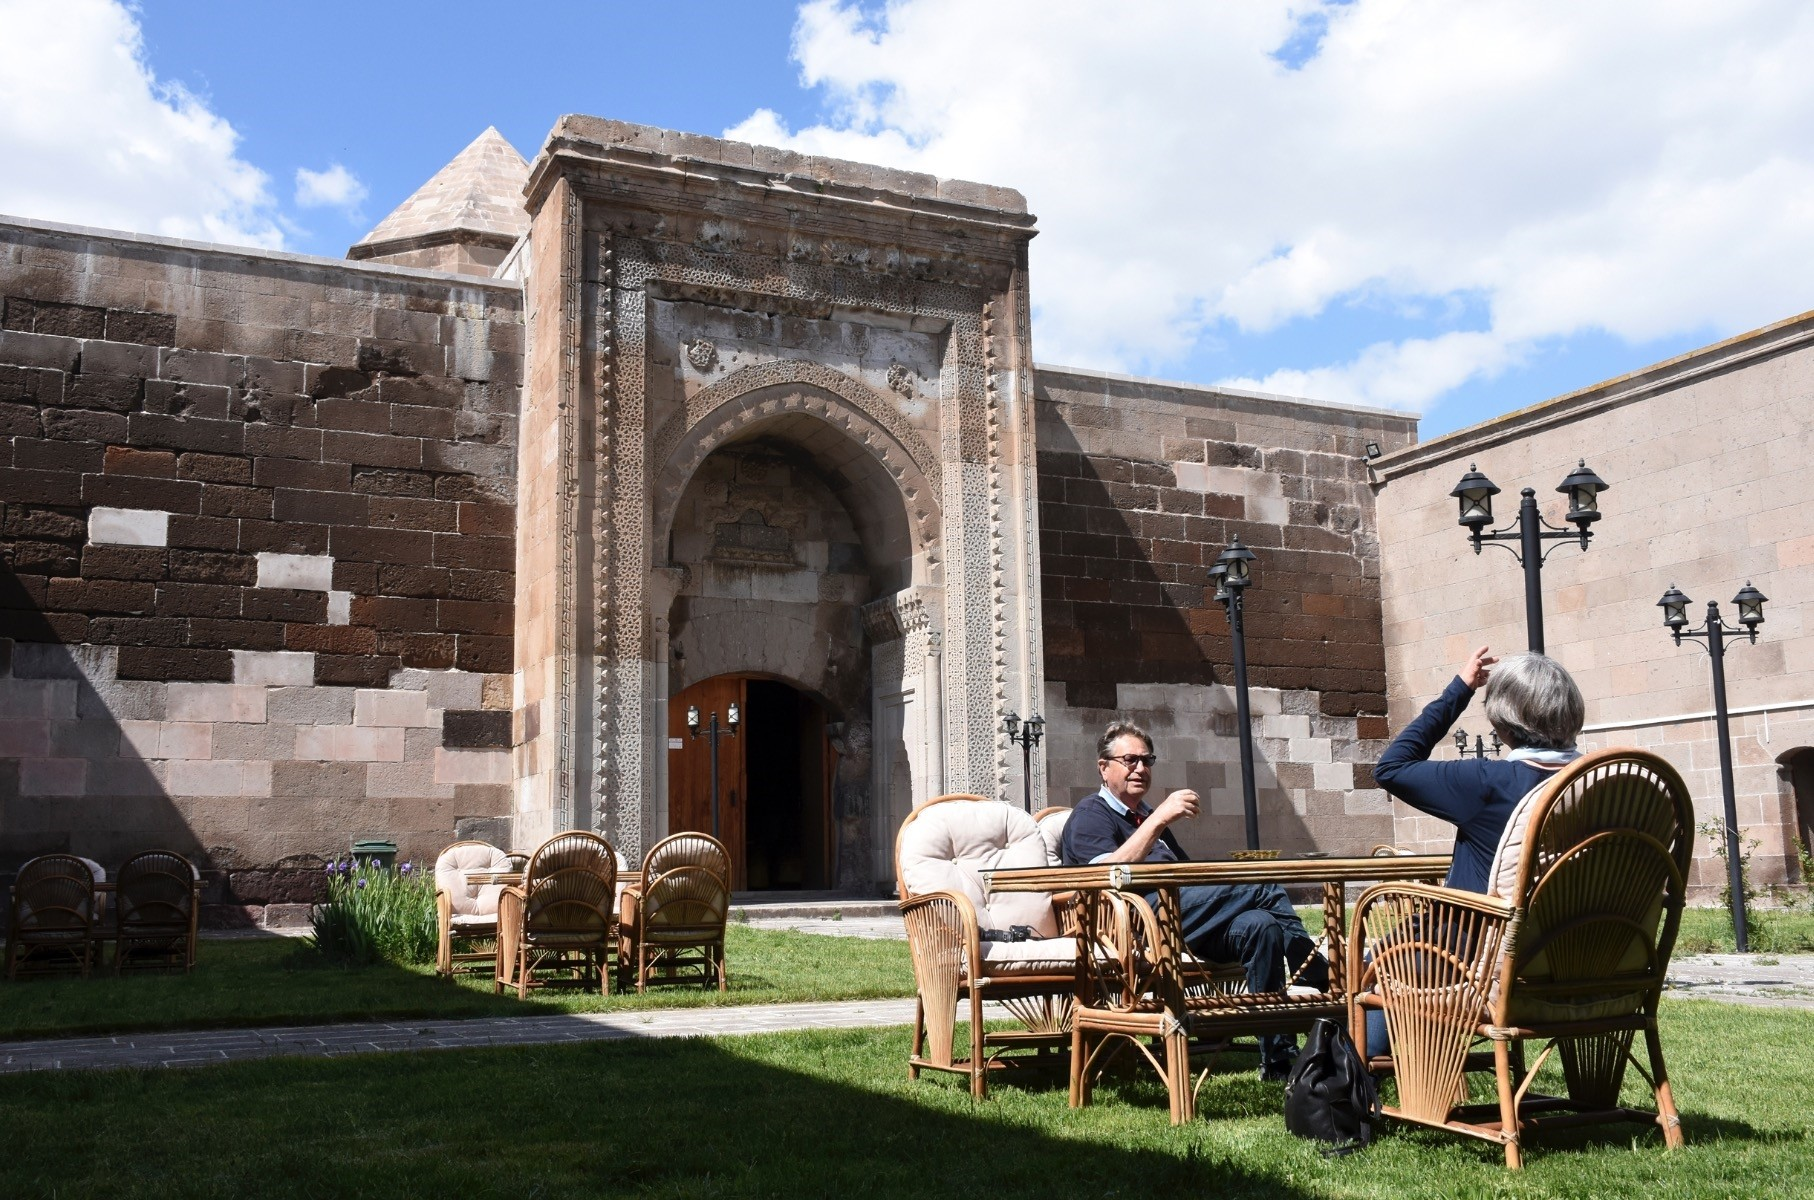 Karatay Caravanserai hosts guest who can eat and sleep at the place just like old days.